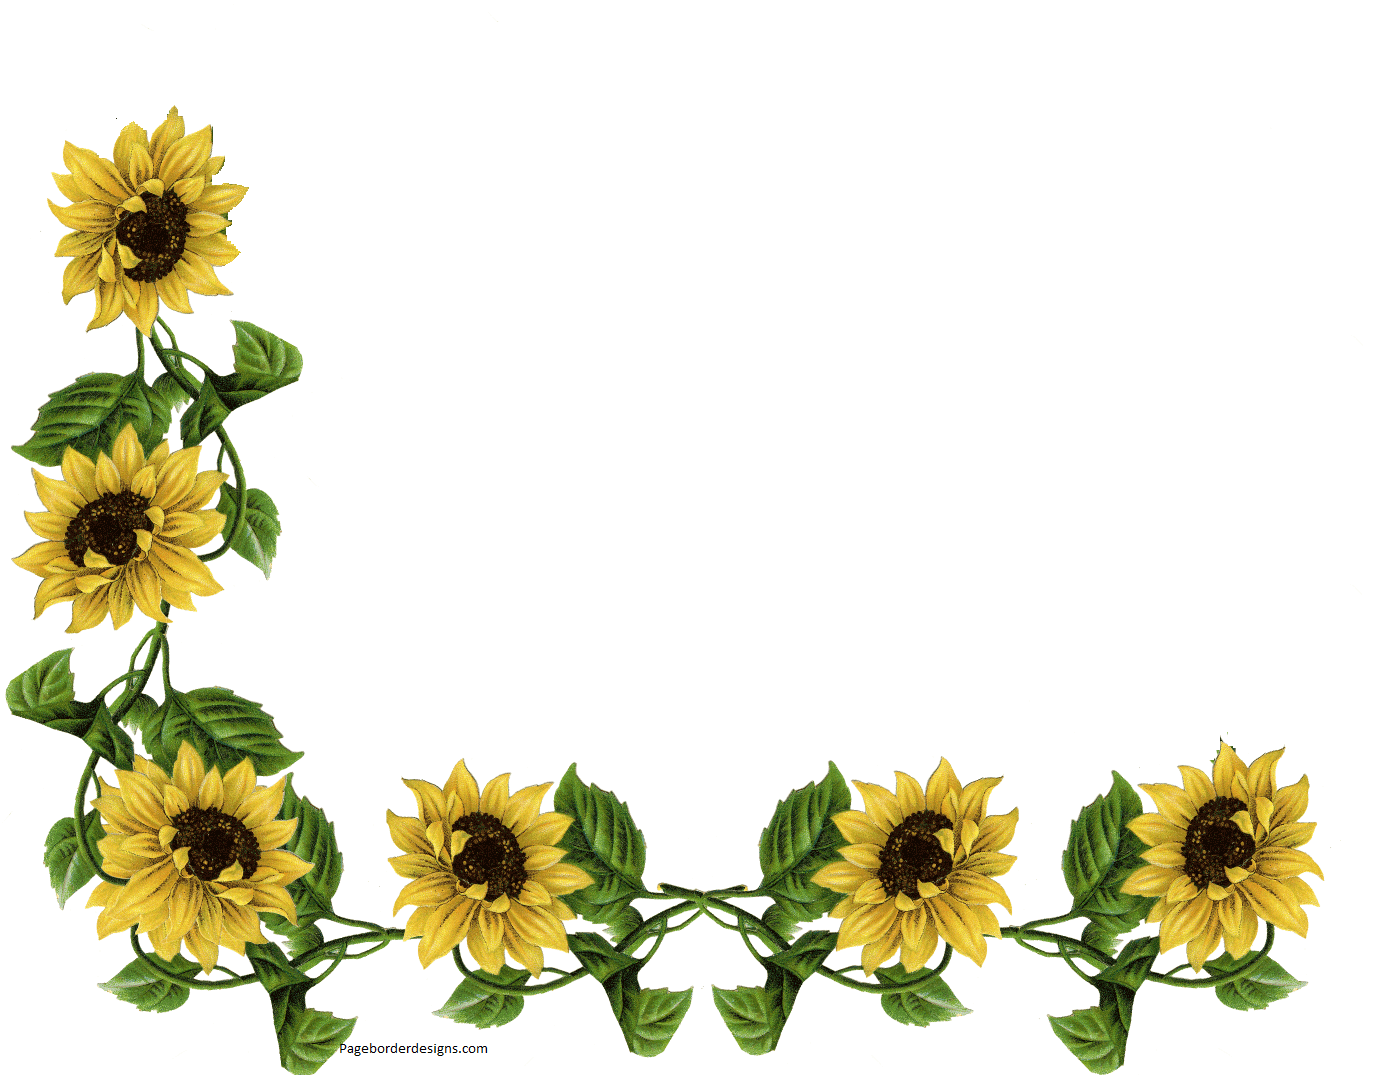 Sunflower Corner Border Design sadiakomal | Border Designs ...